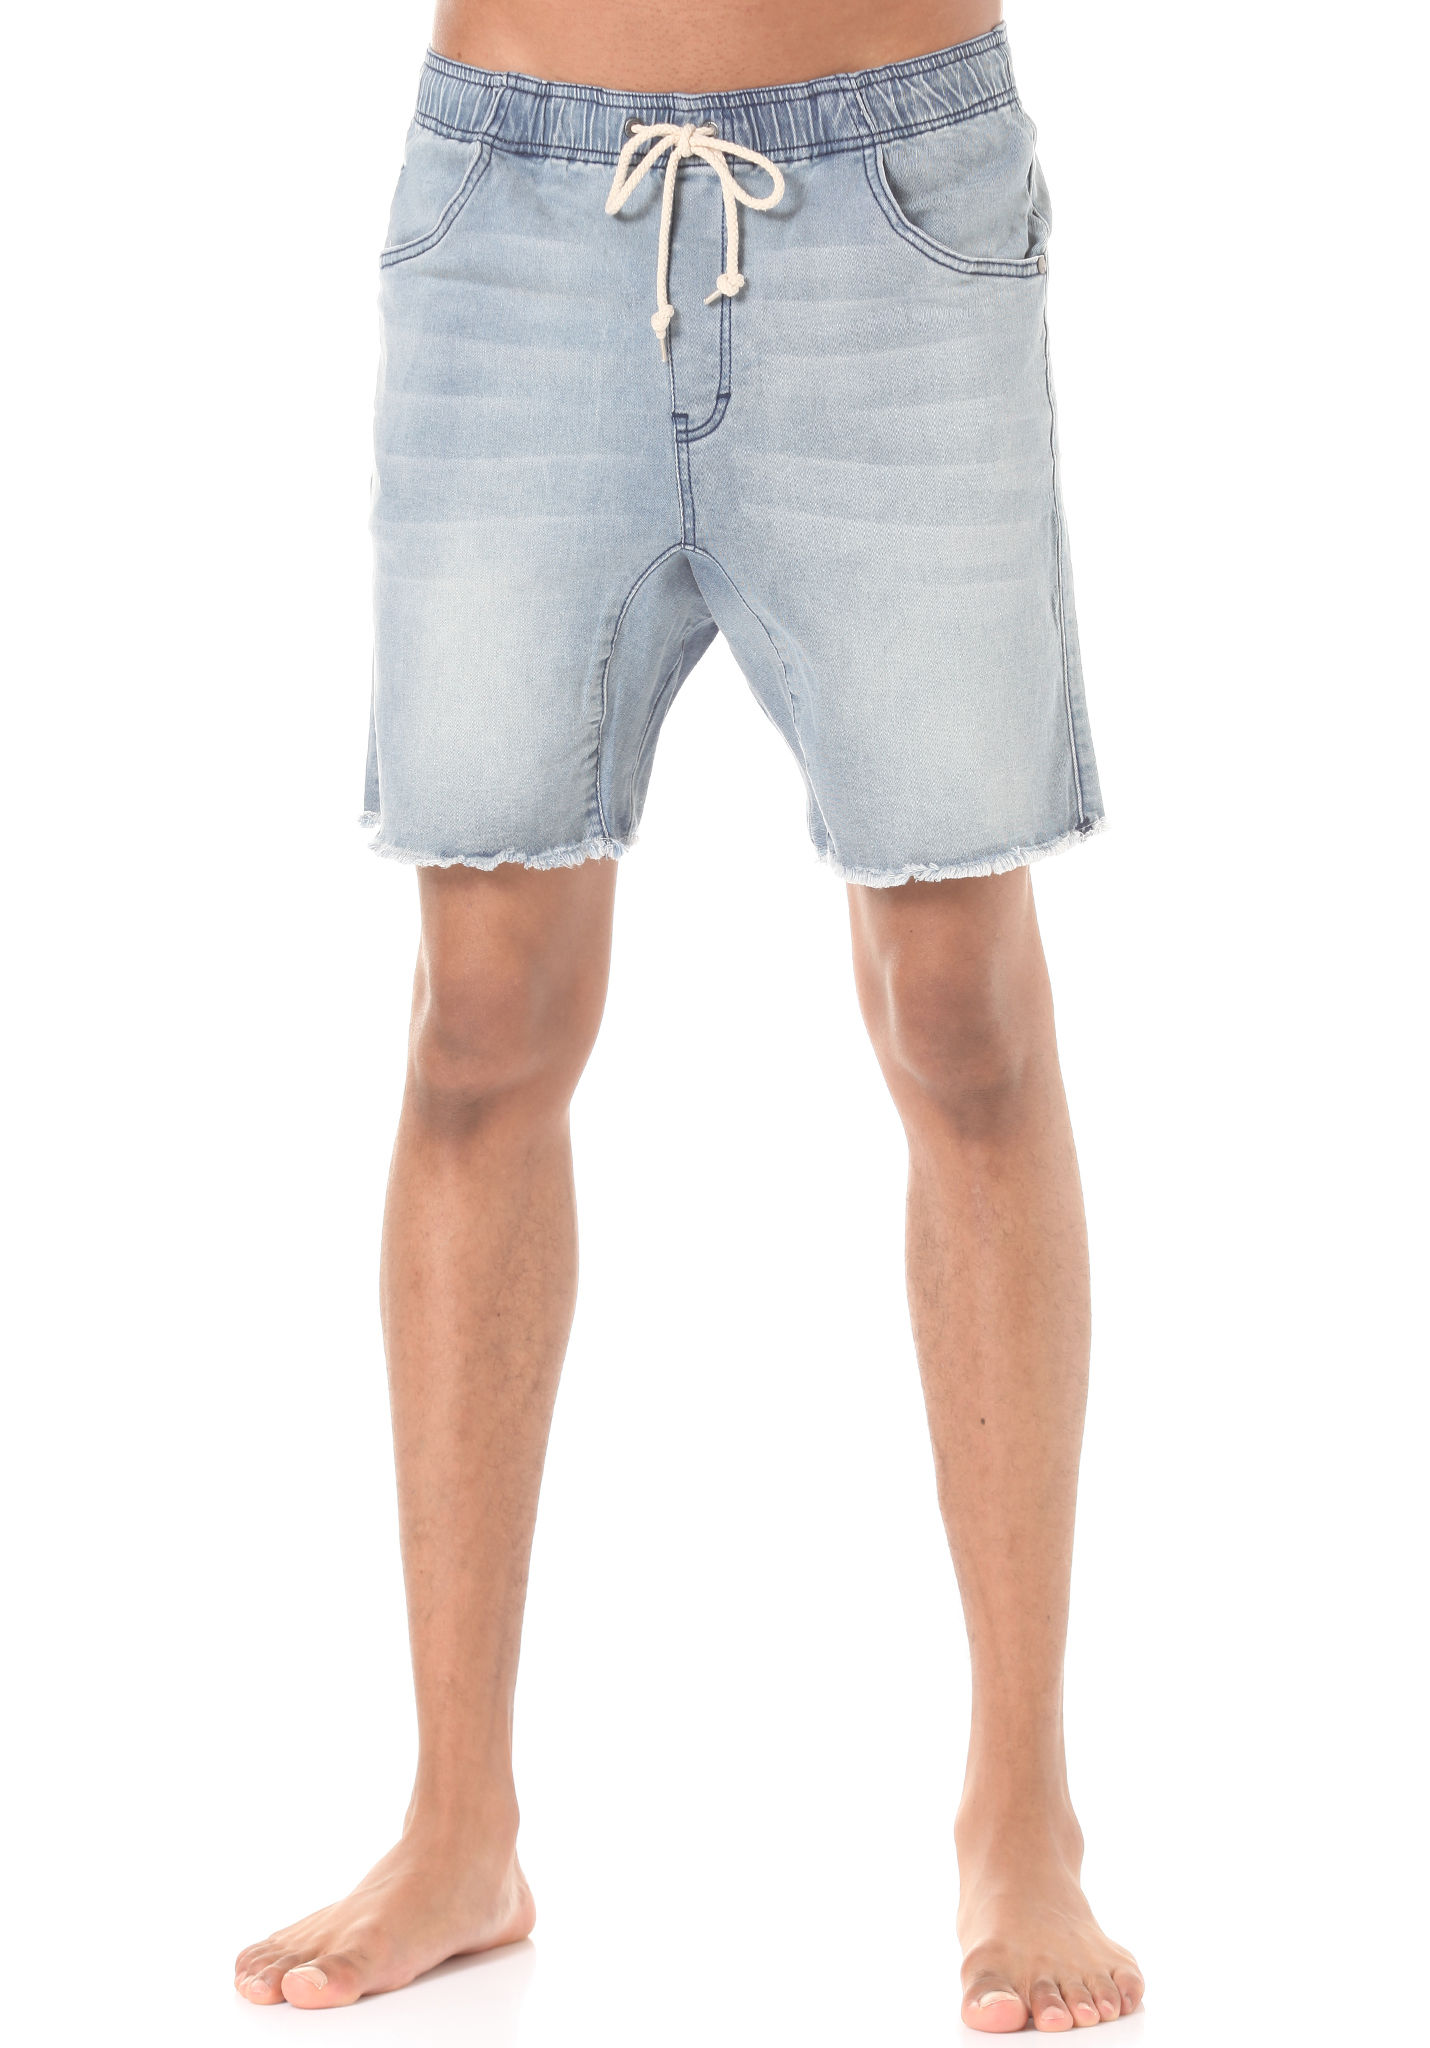 Rusty Baller Denim - Shorts for Men - Blue - Planet Sports